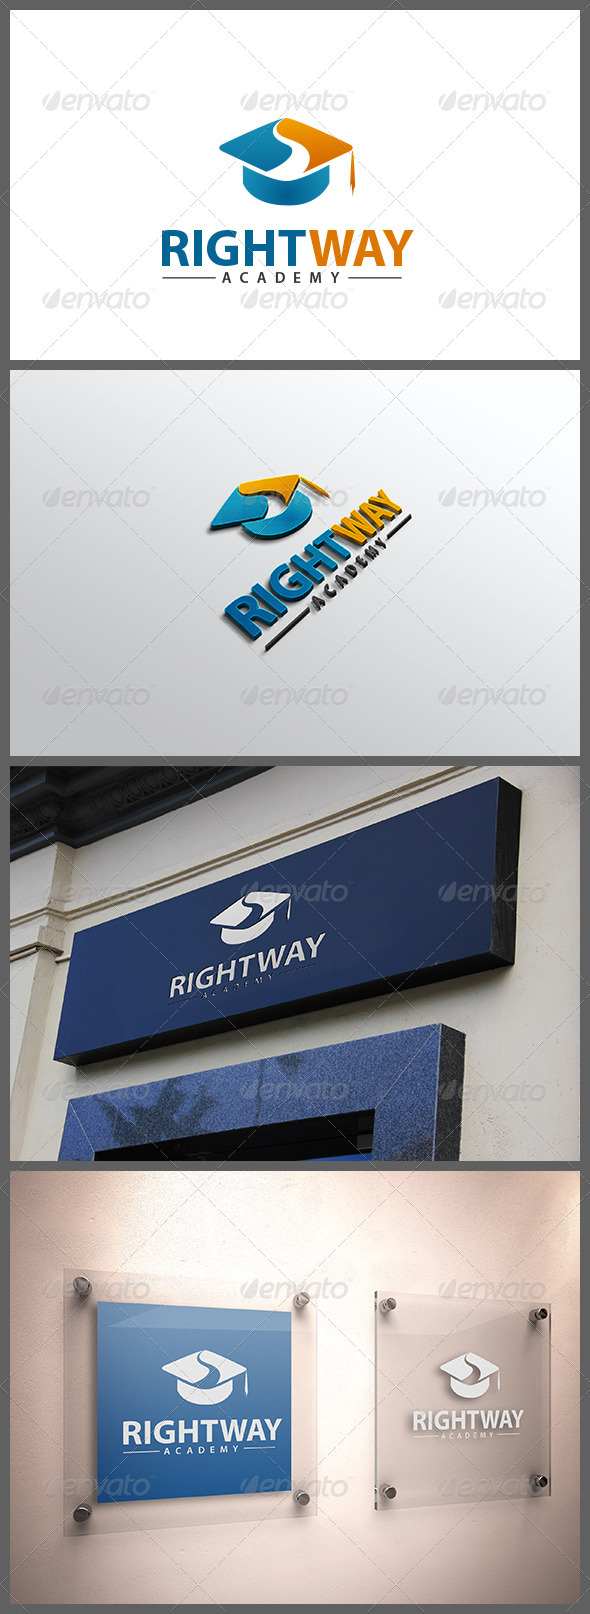 Right Way Academy - Objects Logo Templates